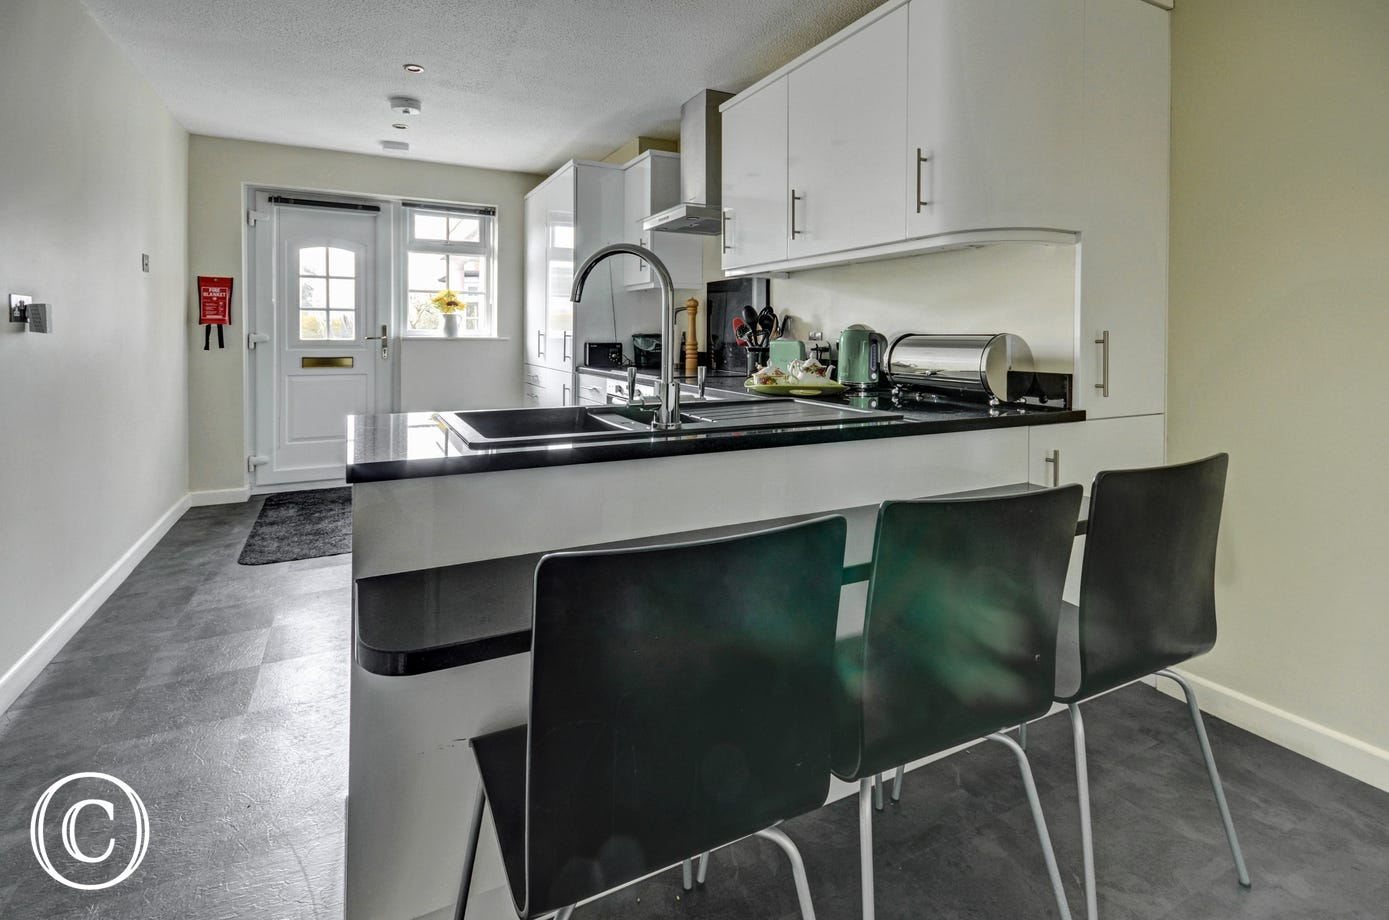 The excellent well equipped kitchen has everything you will need including a breakfast bar